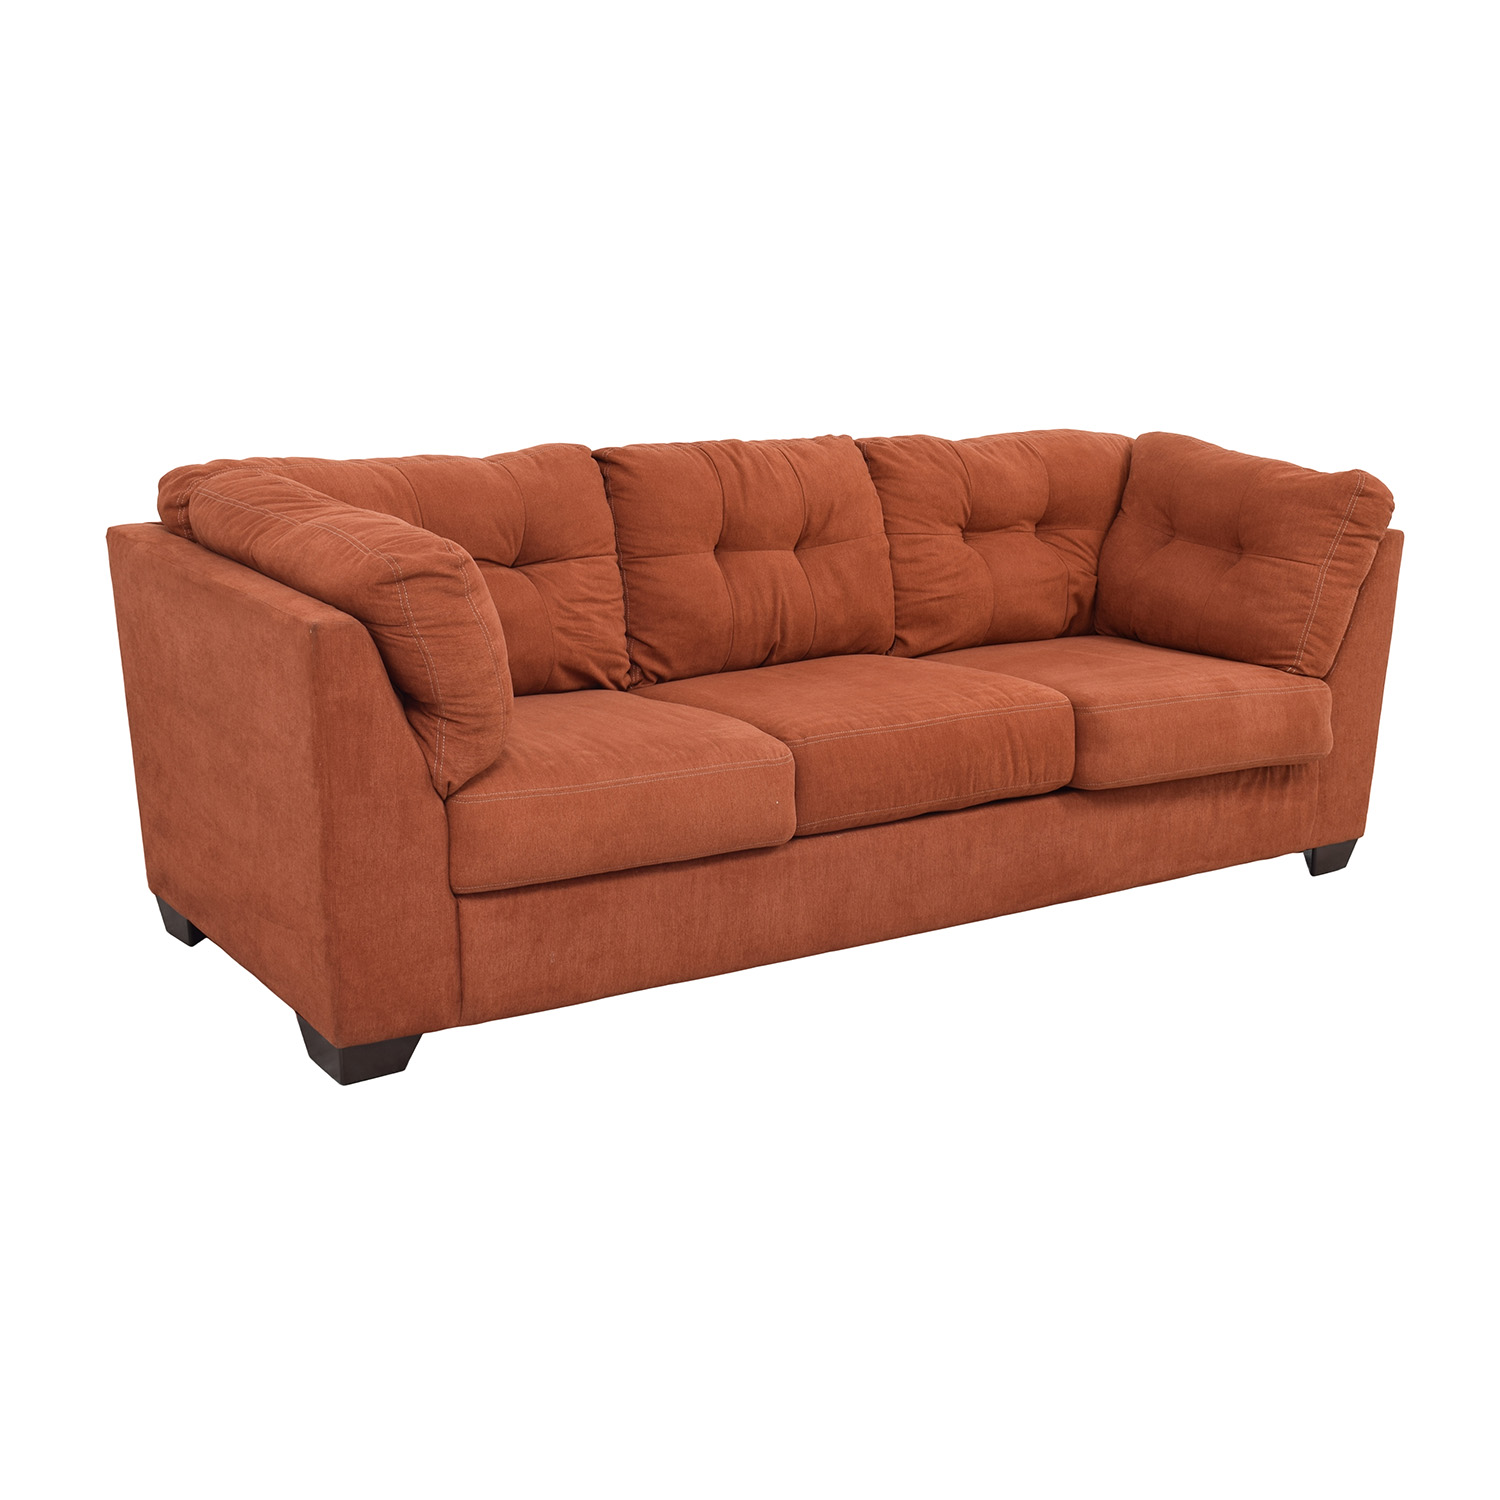 55% OFF Ashley Furniture Ashley Furniture Delta City Rust Tufted